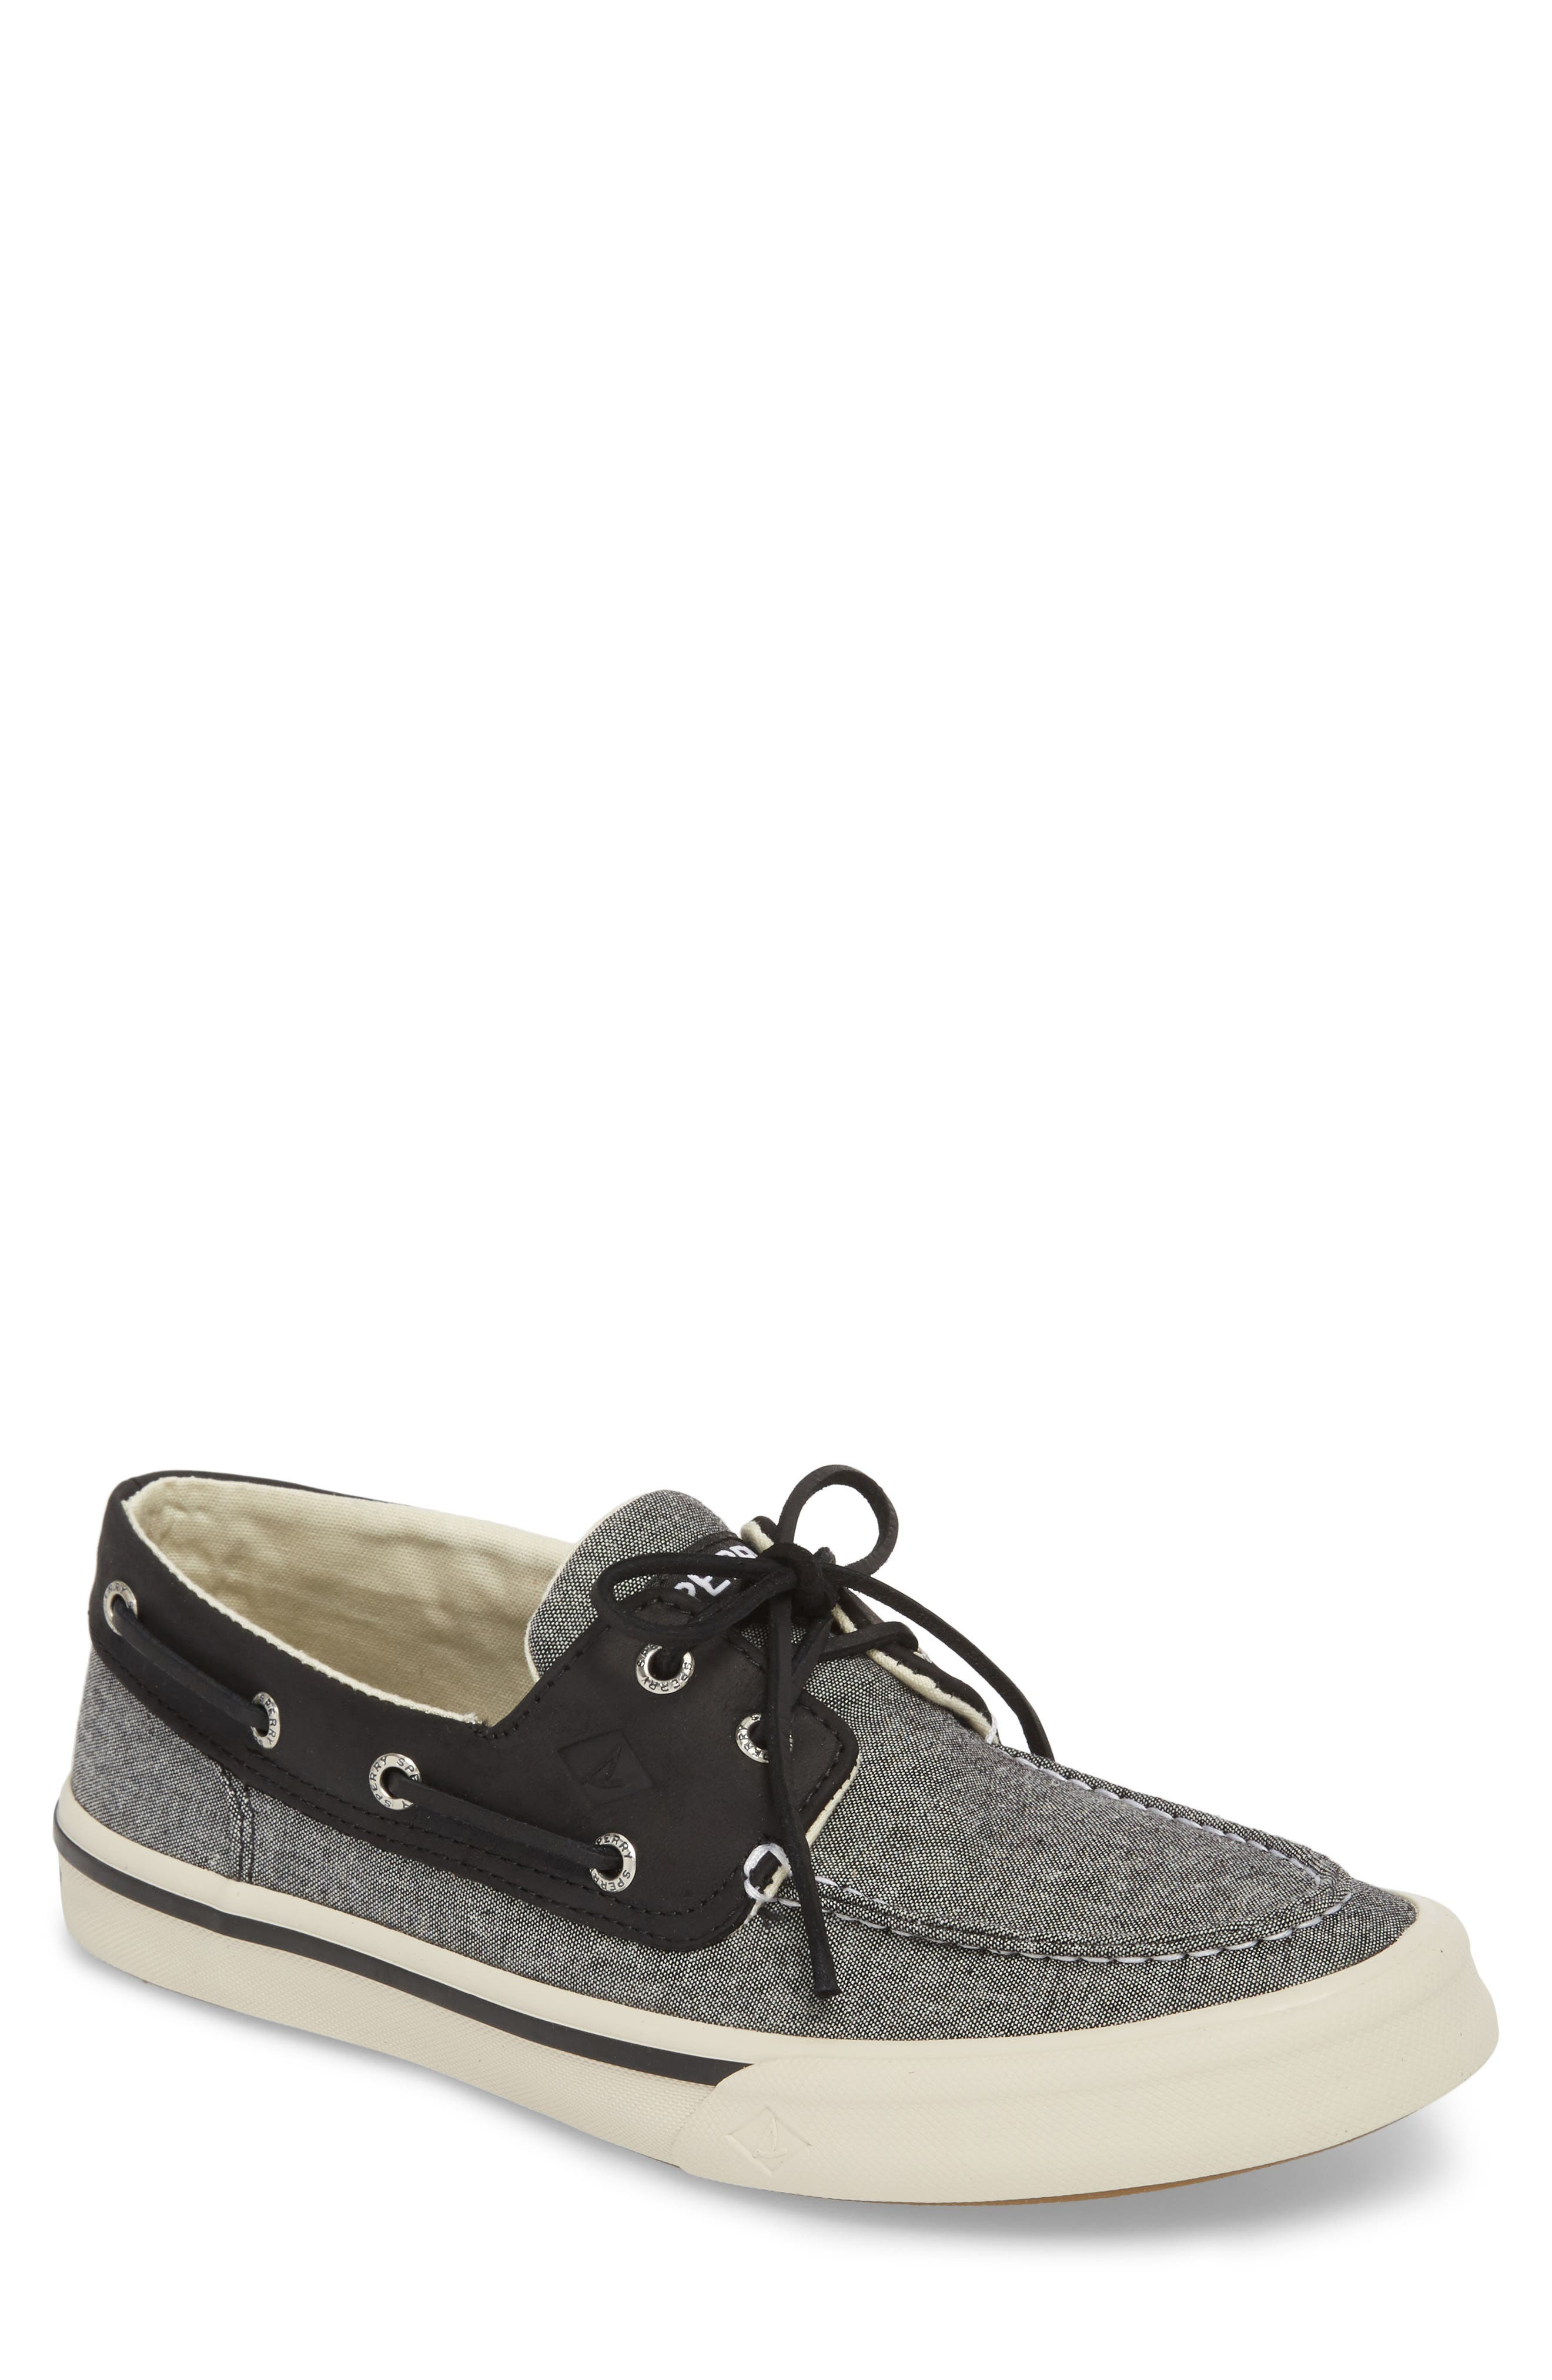 Bahama II Boat Shoe,                             Main thumbnail 1, color,                             021